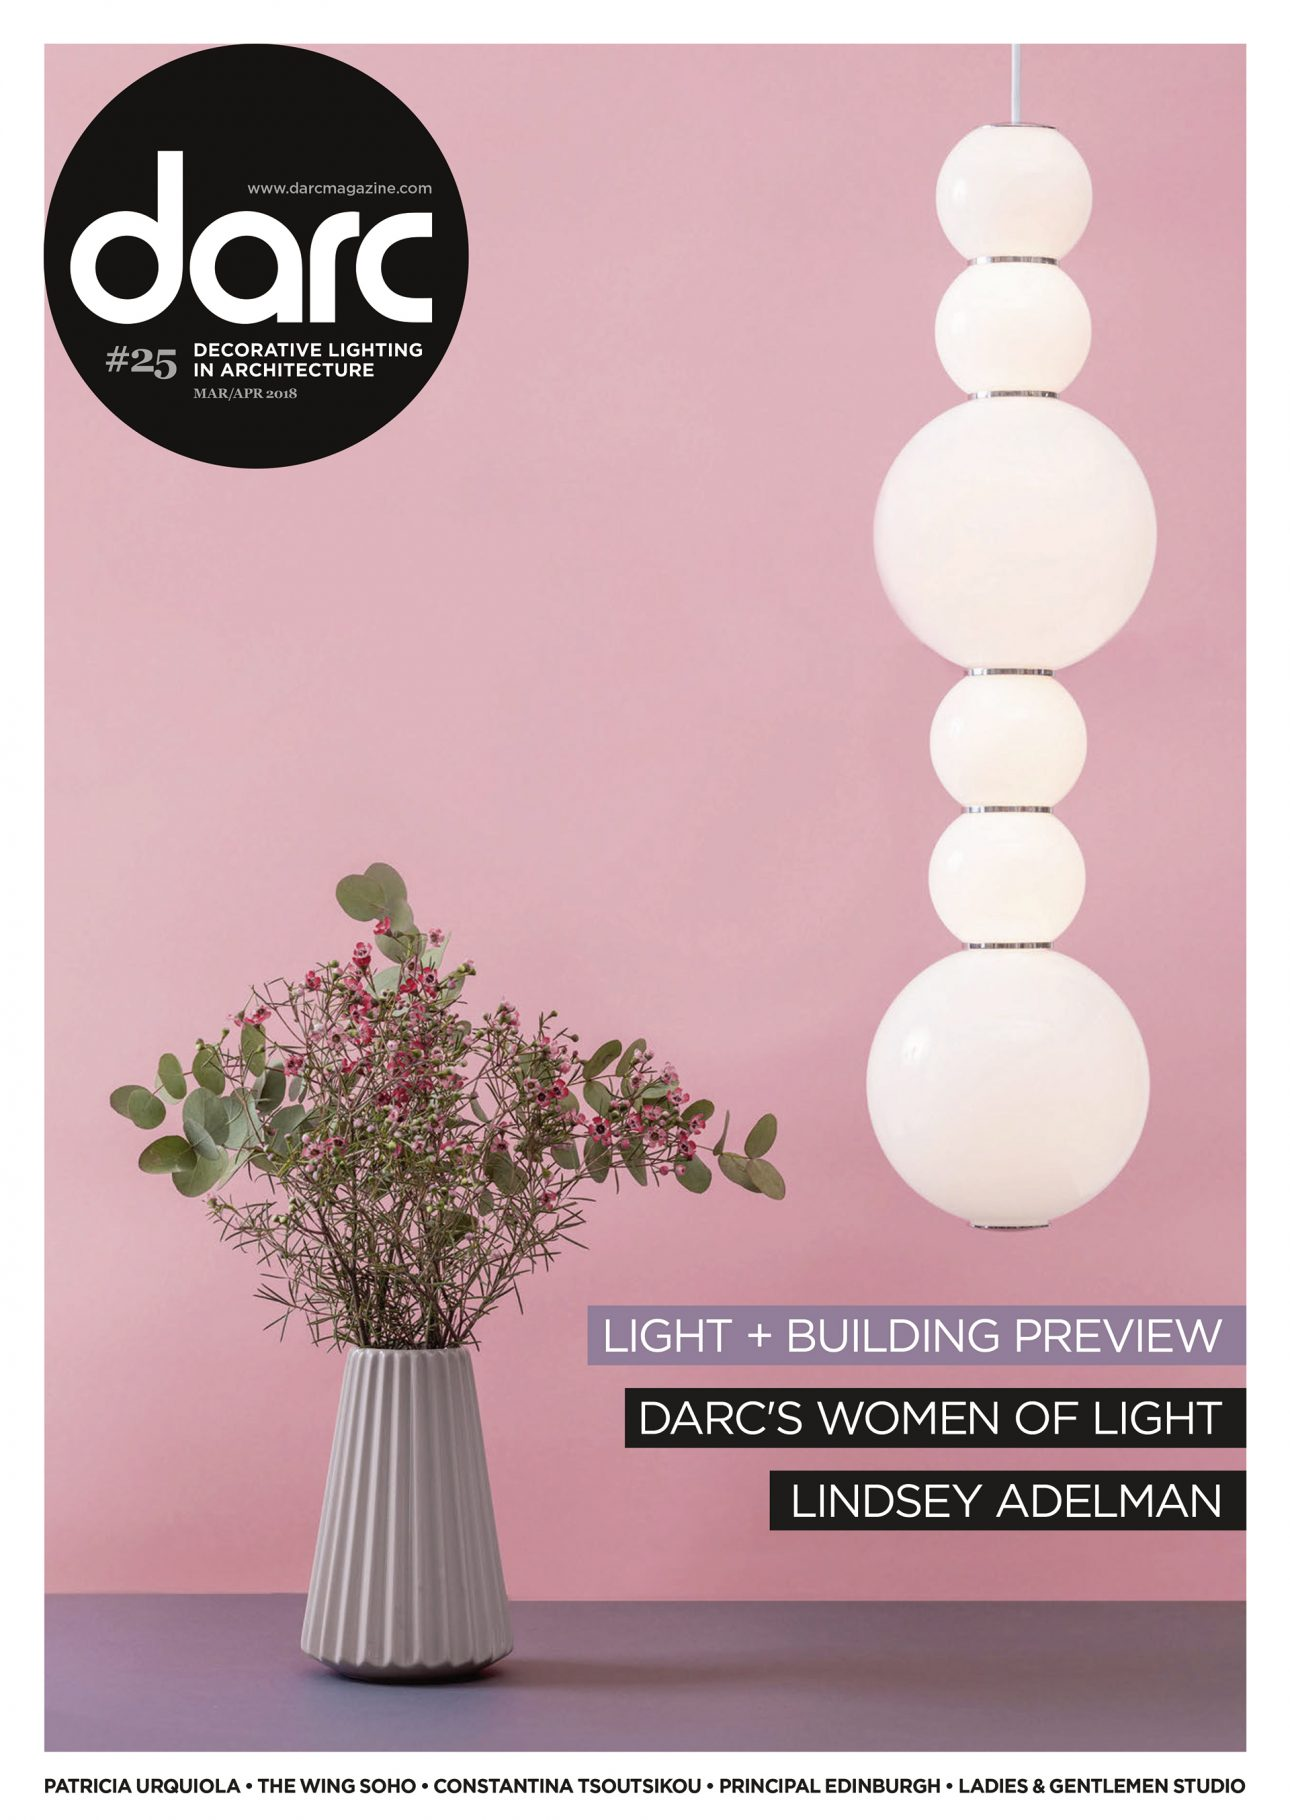 Cover of the darc magazine with an article about JOI-Design